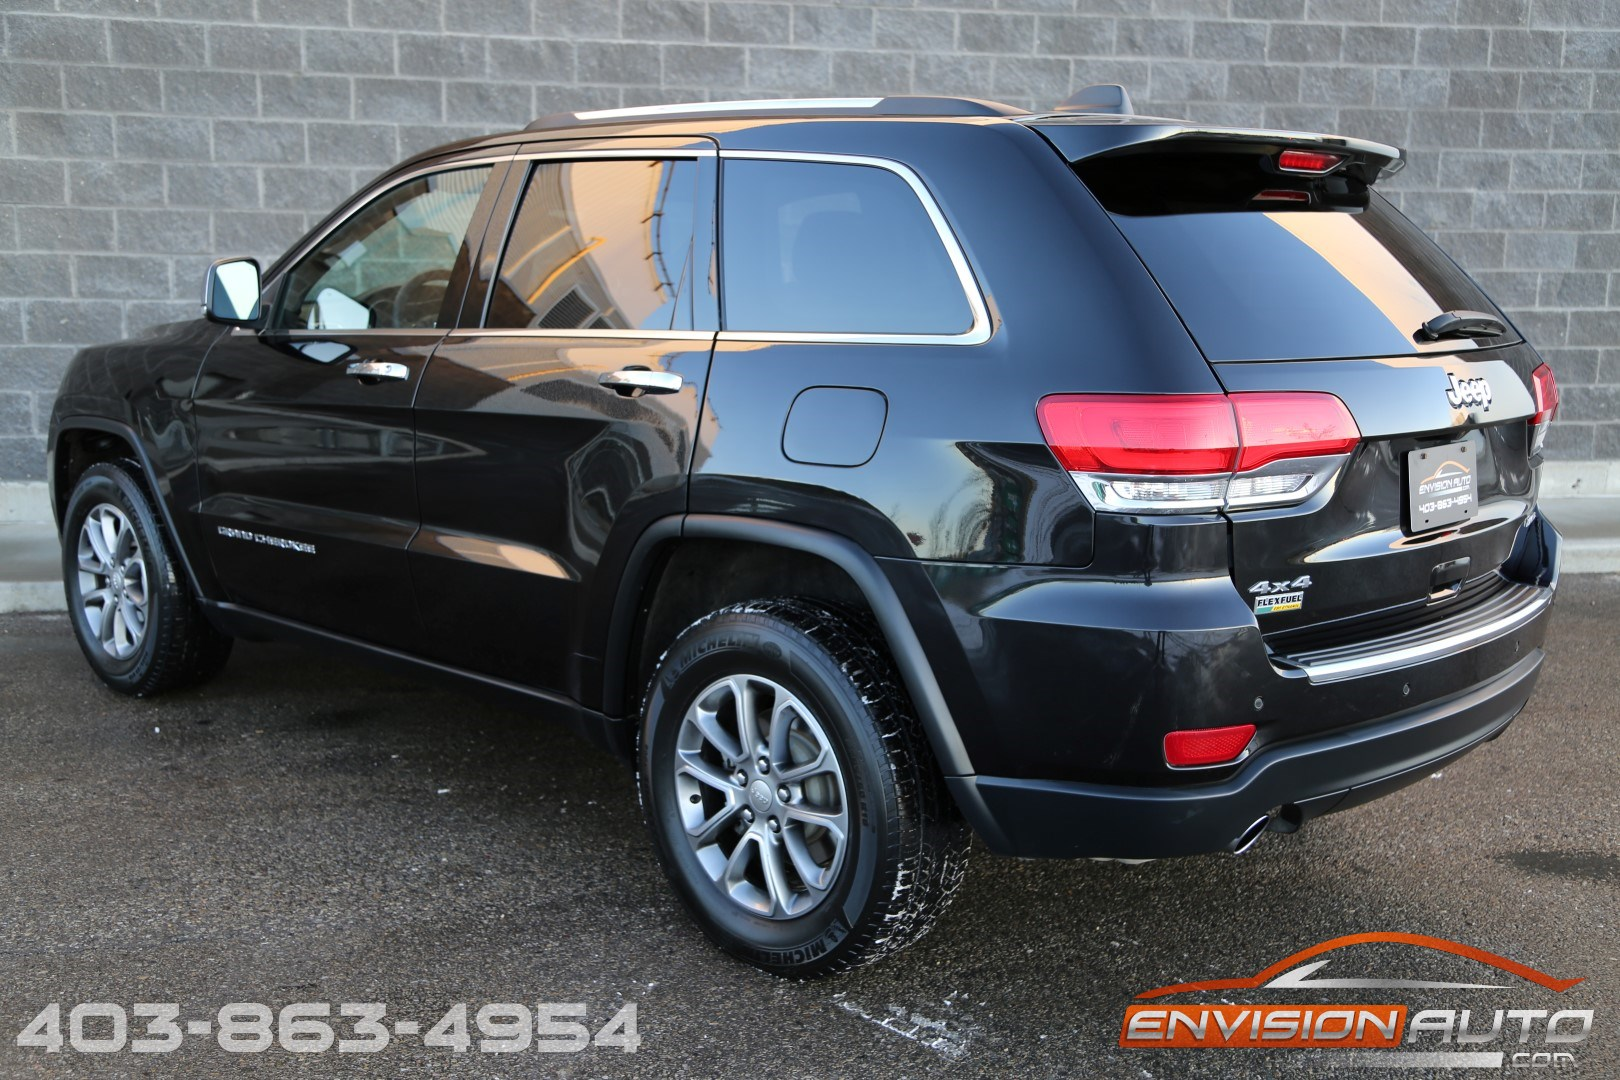 2014 jeep grand cherokee limited 4 4 envision auto. Black Bedroom Furniture Sets. Home Design Ideas